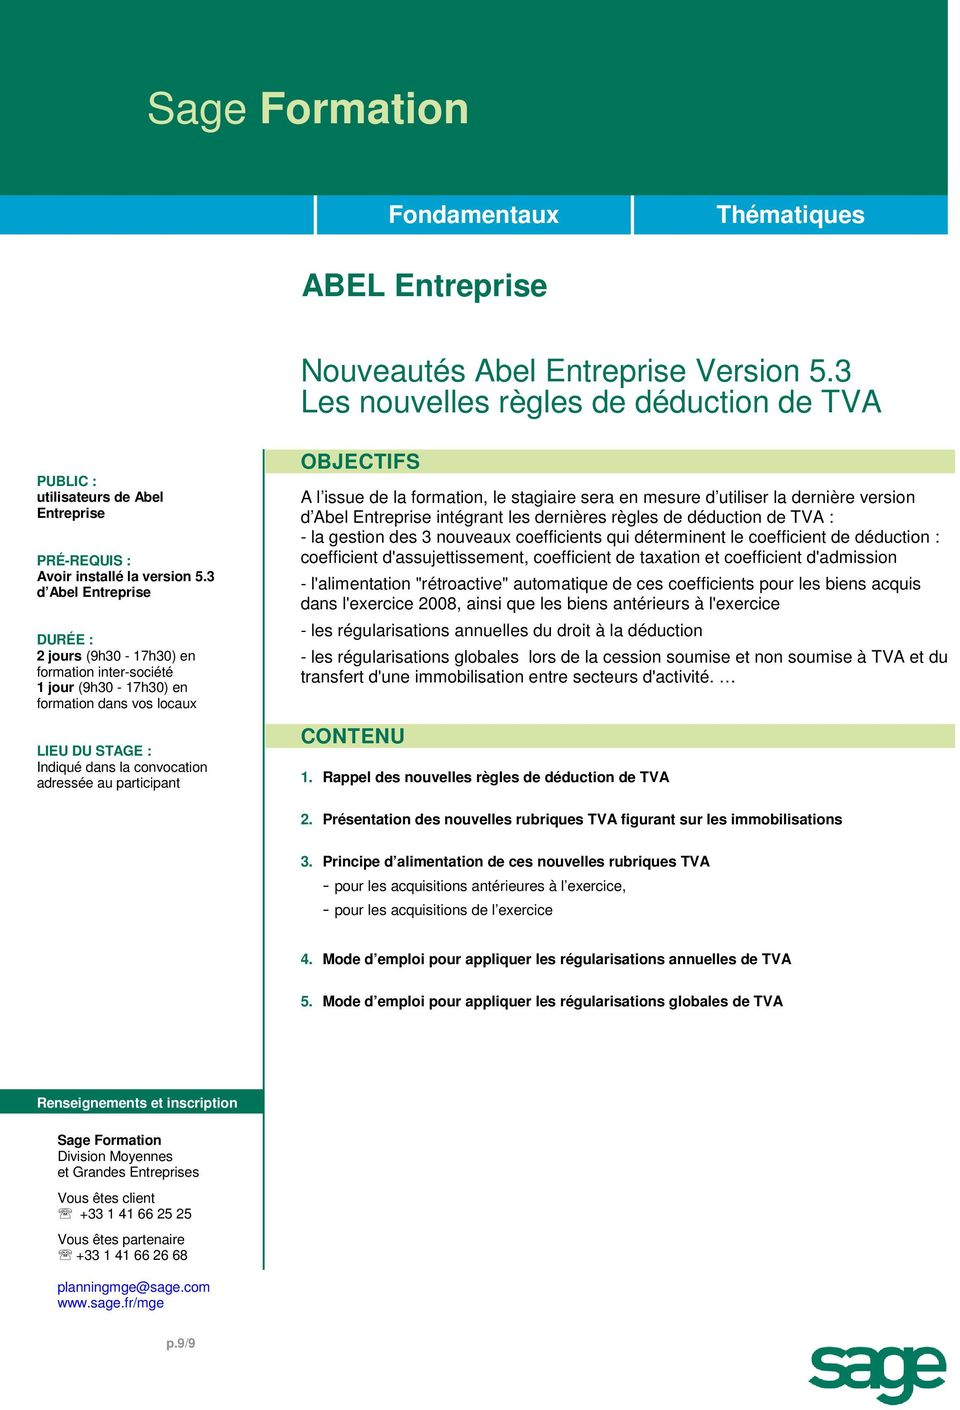 version d Abel Entreprise intégrant les dernières règles de déduction de TVA : - la gestion des 3 nouveaux coefficients qui déterminent le coefficient de déduction : coefficient d'assujettissement,